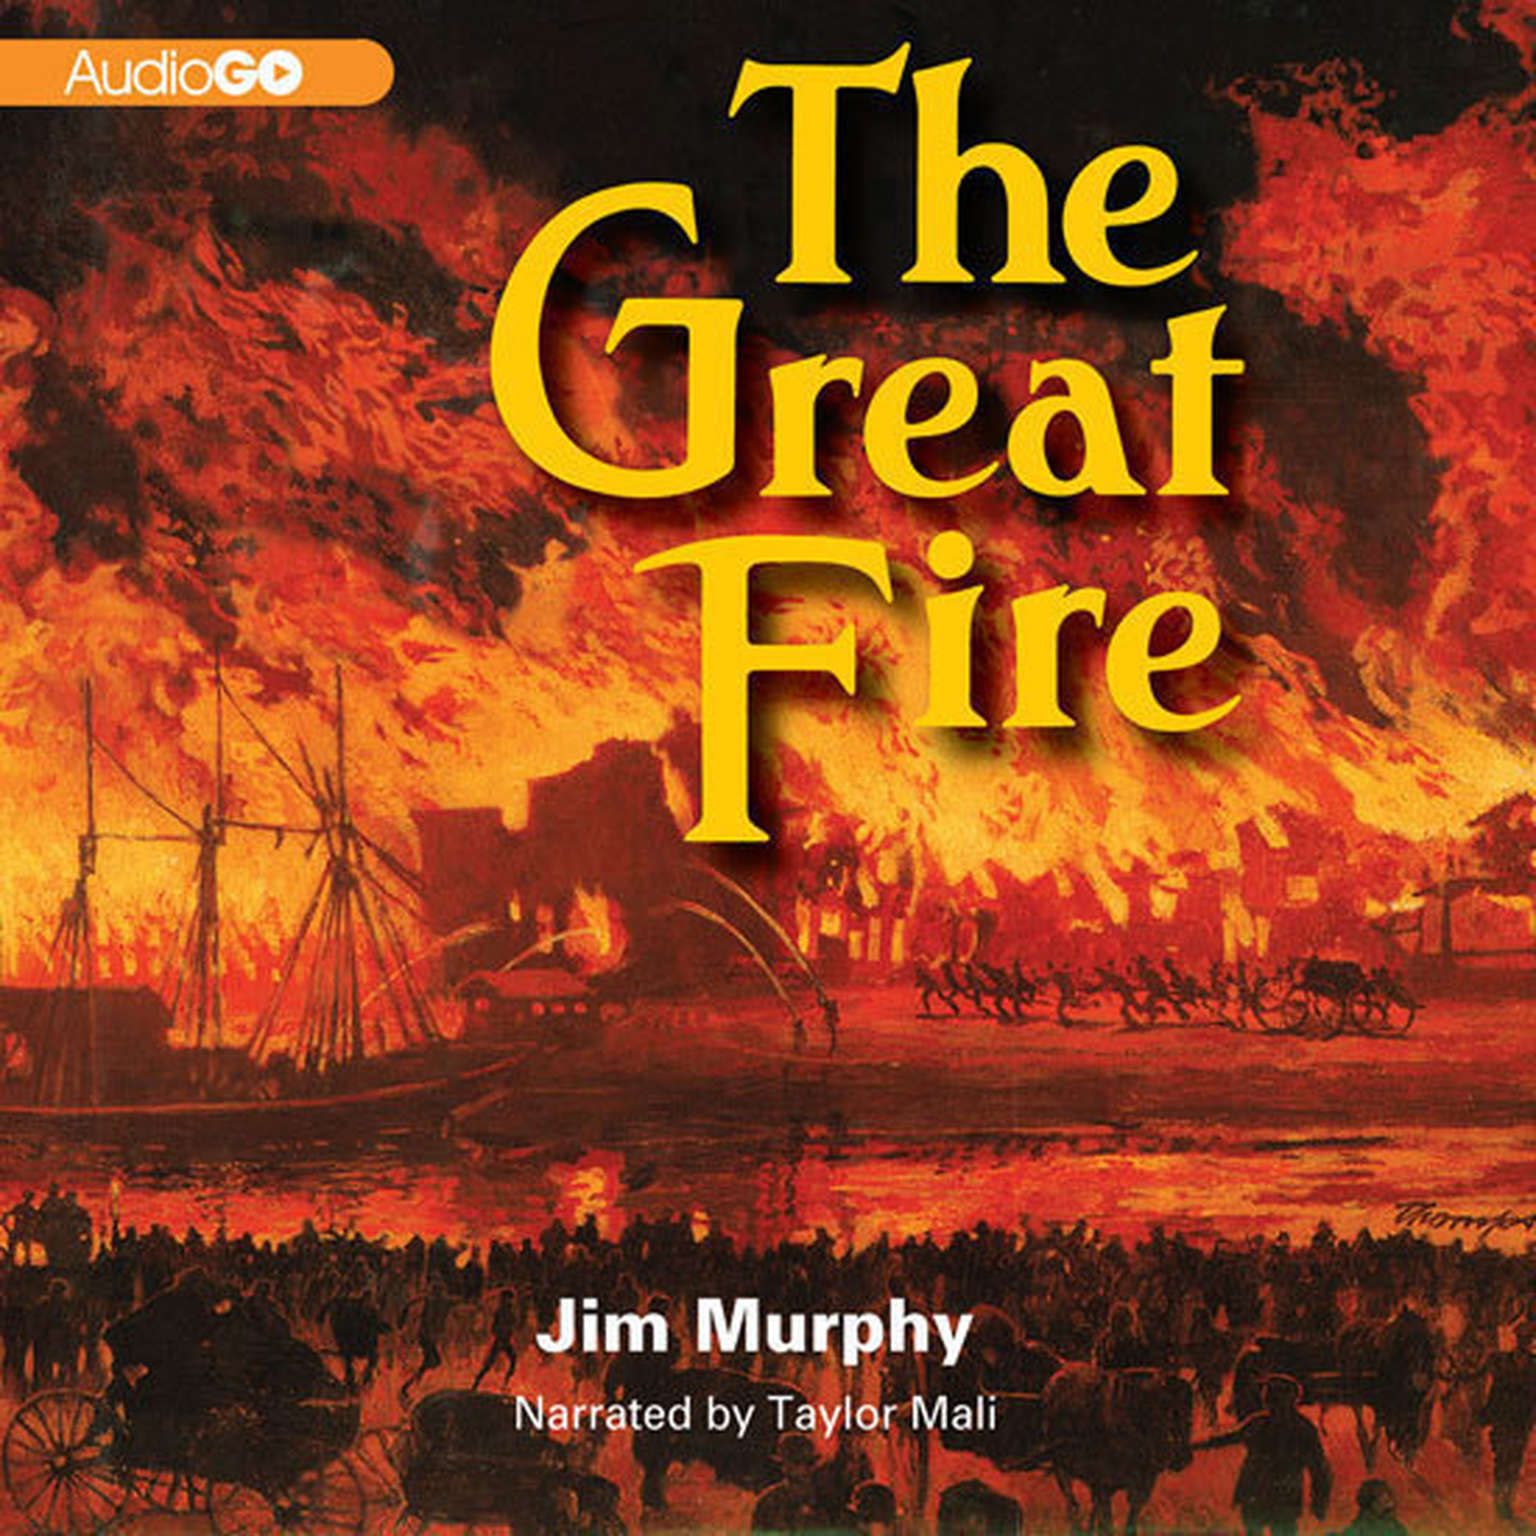 a summary of the great fire a historical fiction book by jim murphy Bibliography murphy, jim the great fire new york: and the chicago historical society to piece the book ends with a summary of the speculation.